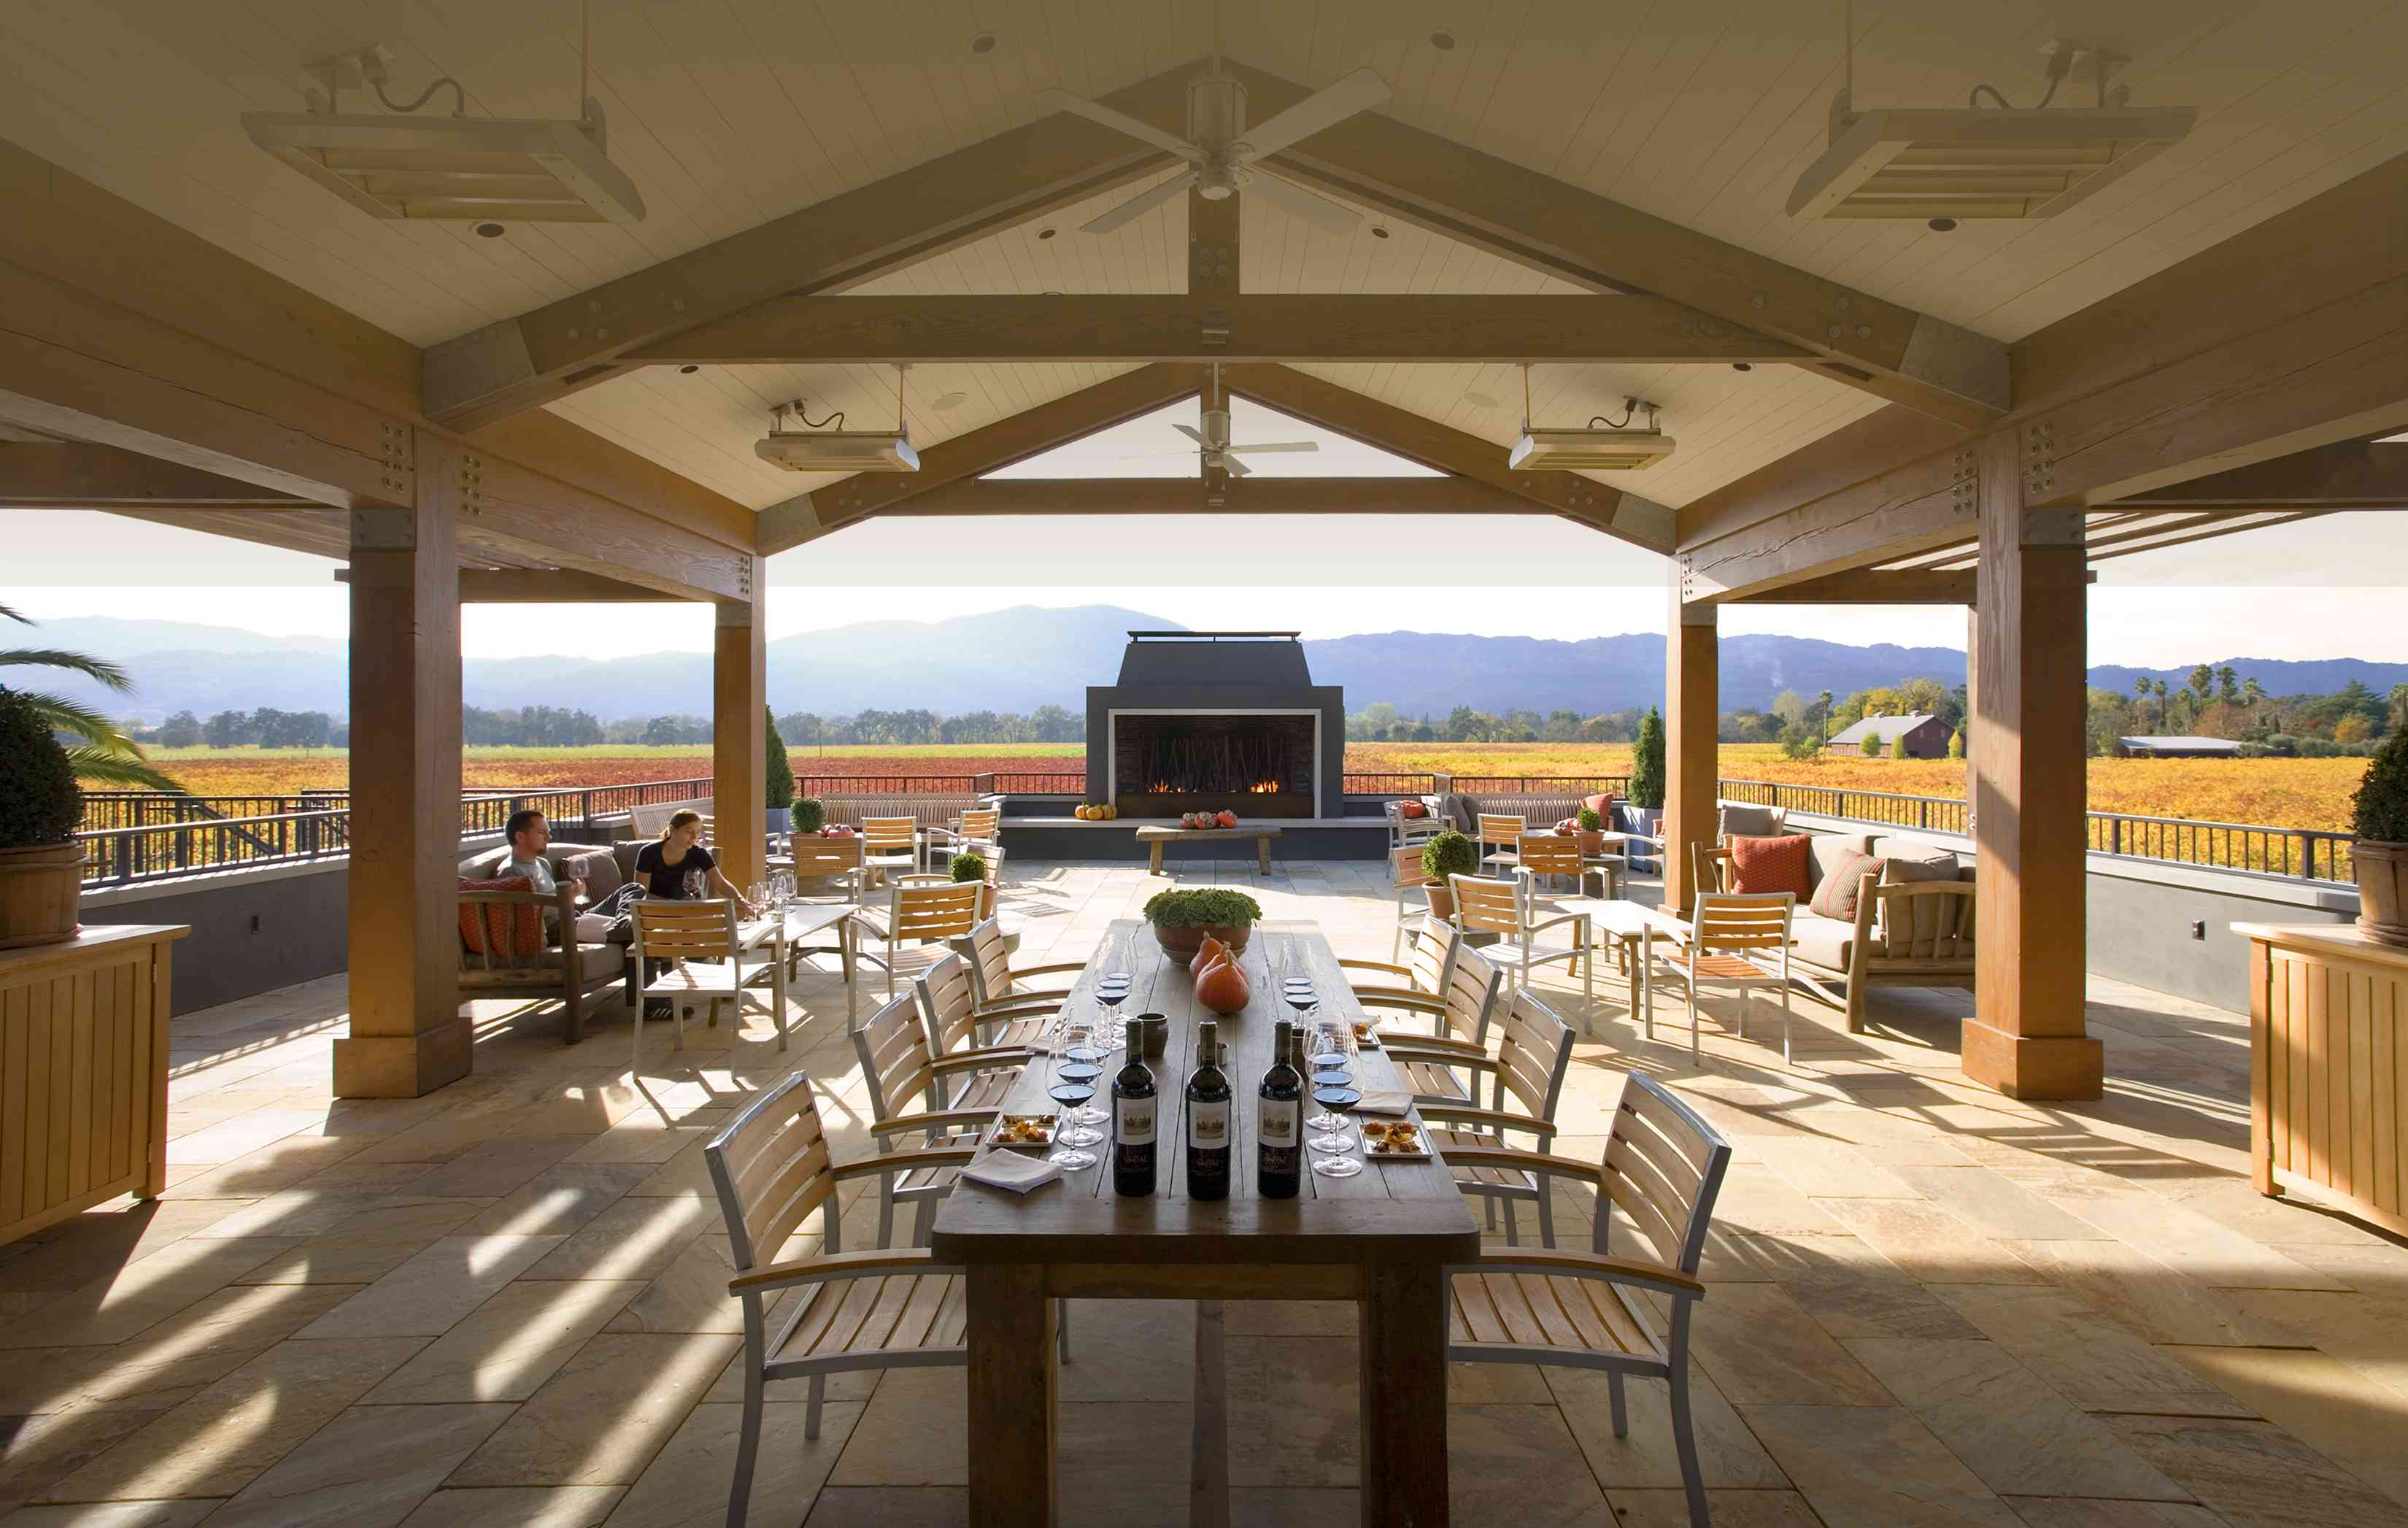 A terrace at Round Pond Estate vineyard with a long table and chairs